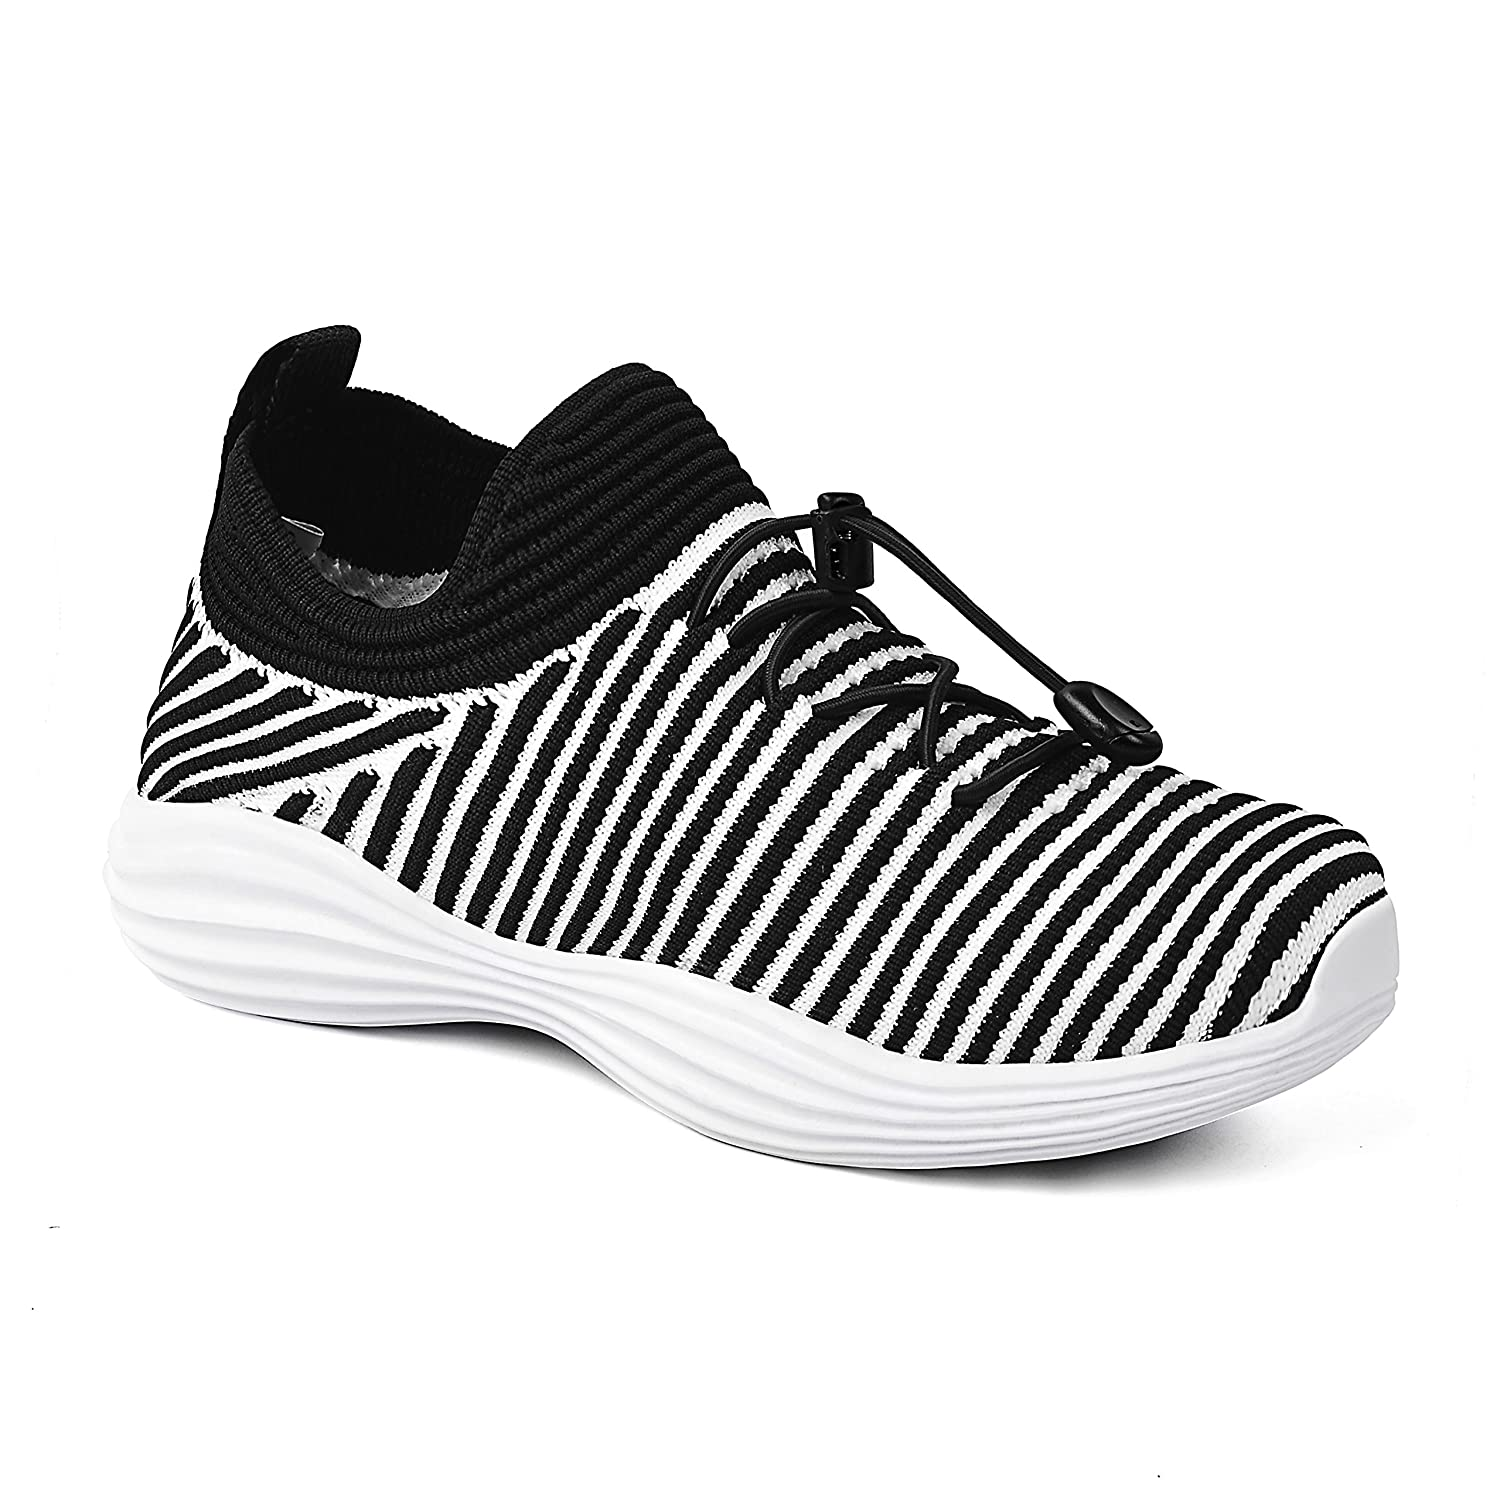 QANSI レディース B079HXMPYH 2.5 M US Little Kid Black/White903